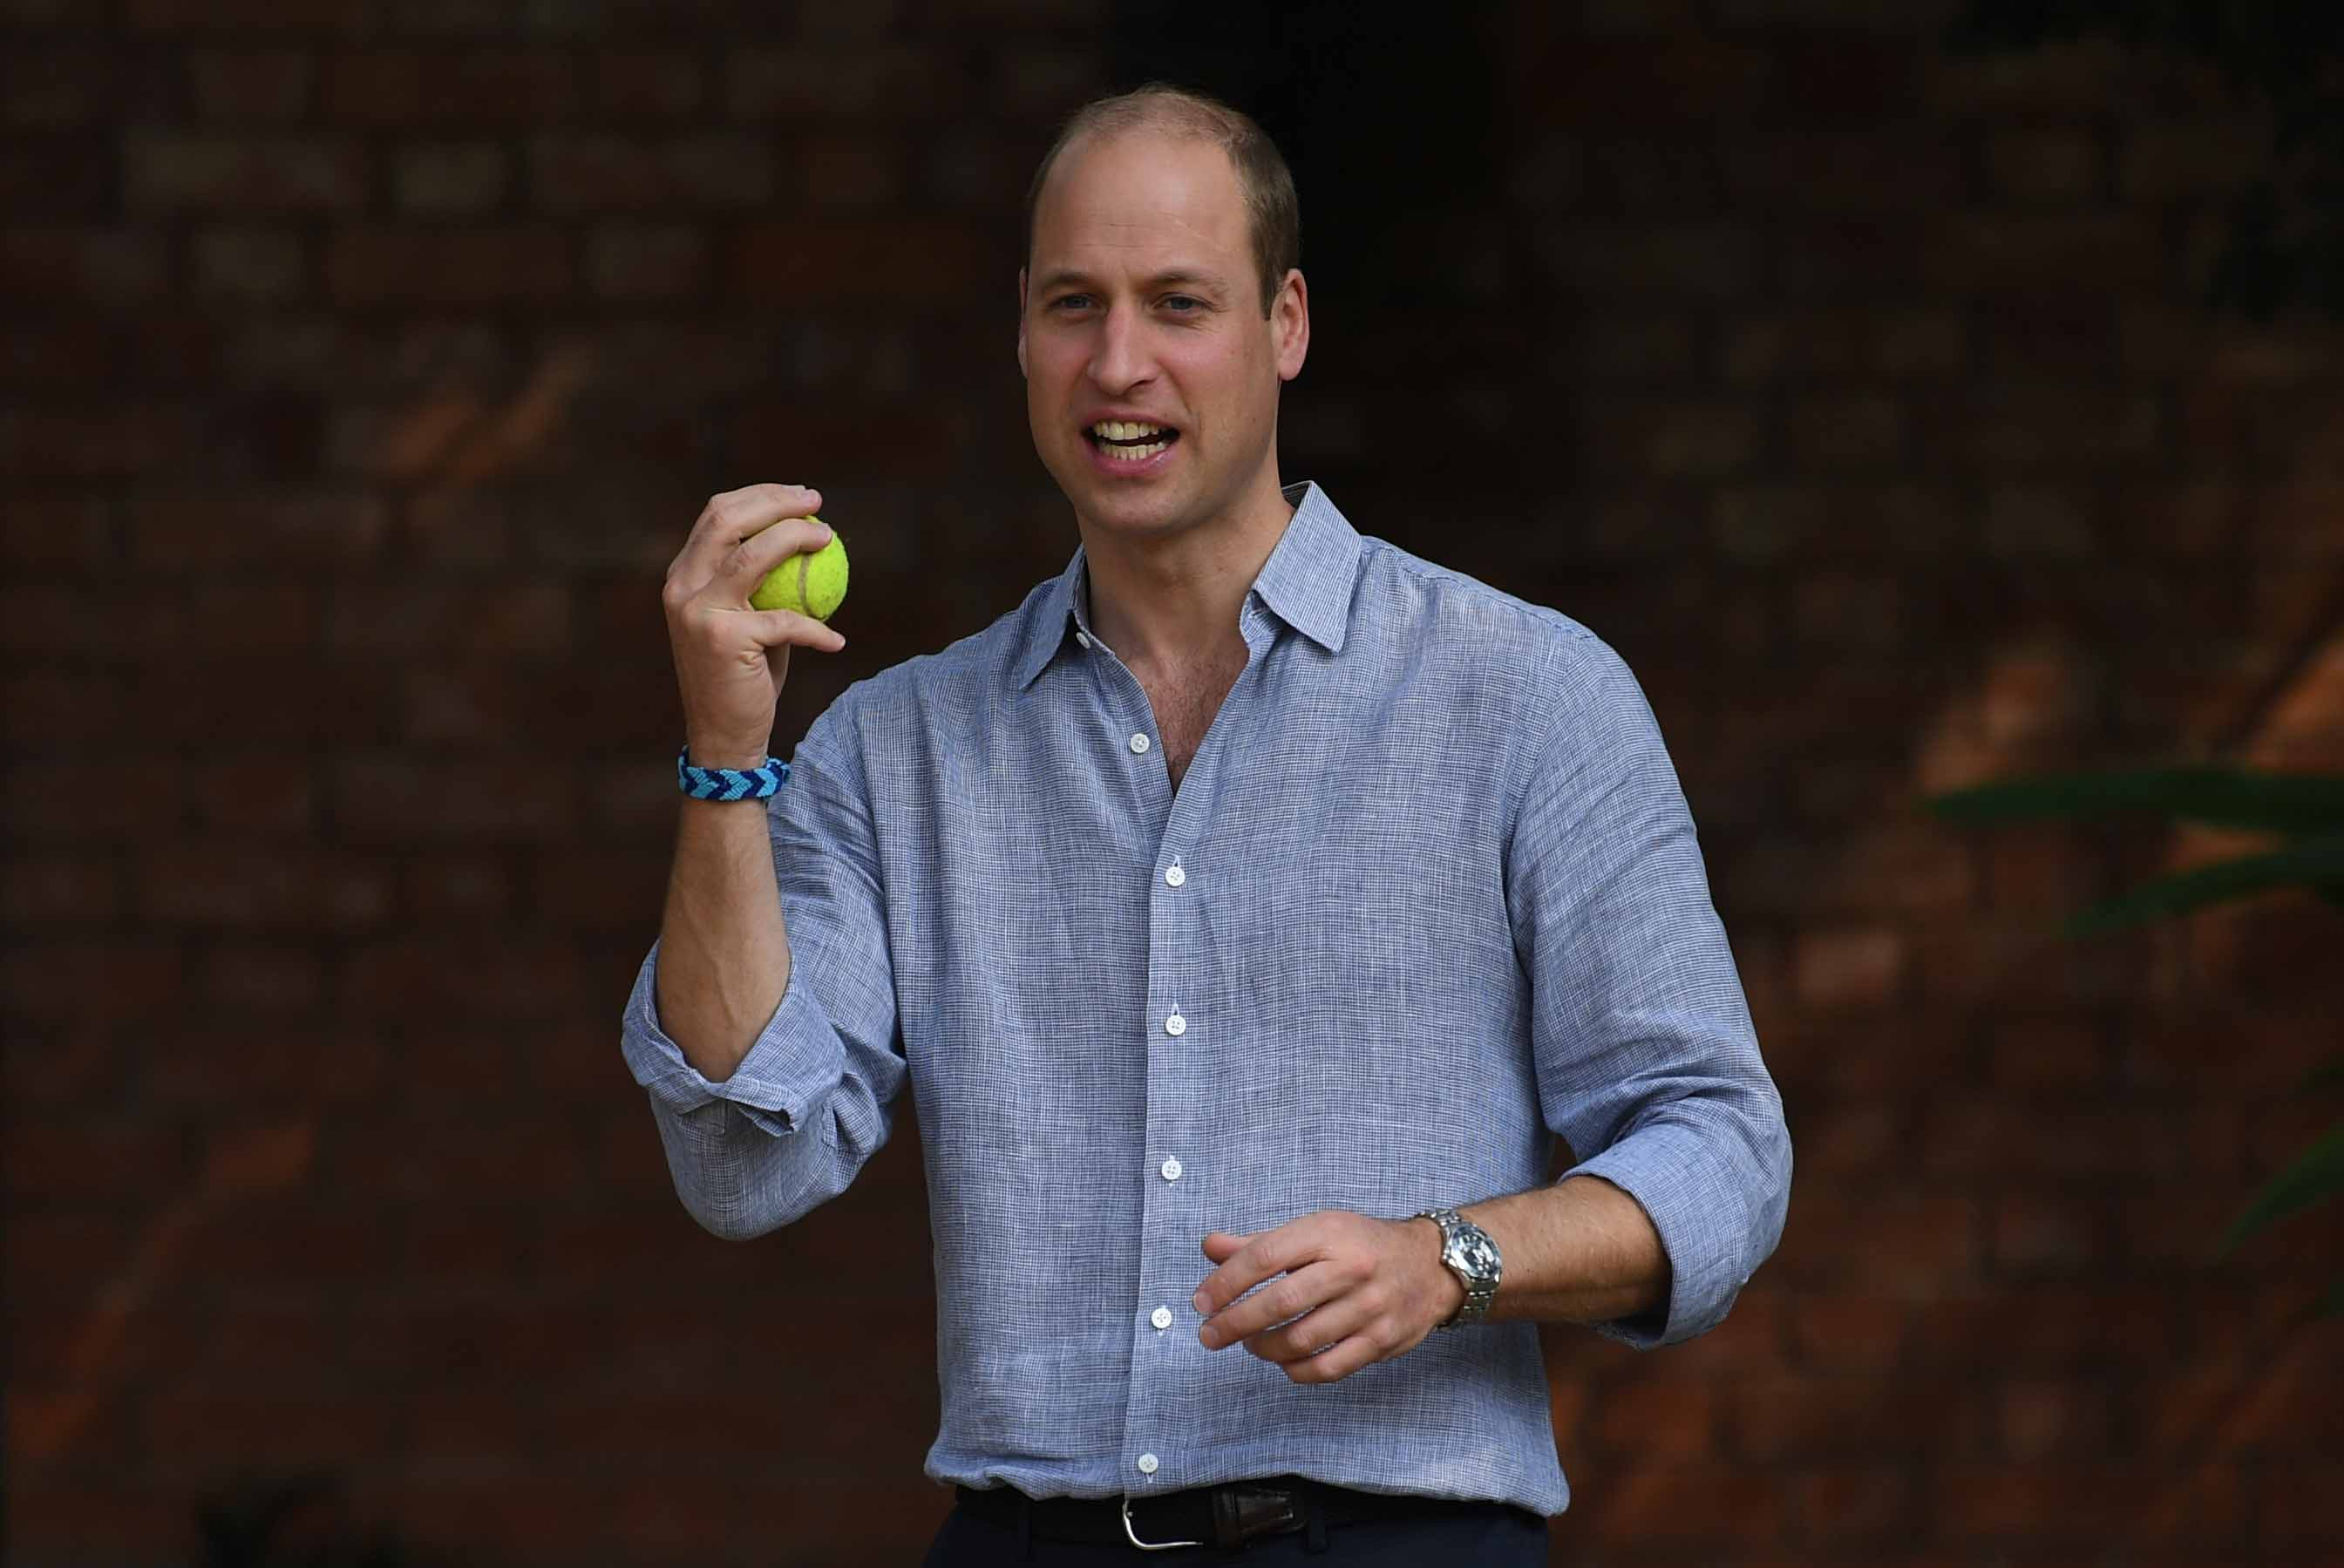 Prince George's latest 'obsession' according to dad, Prince William